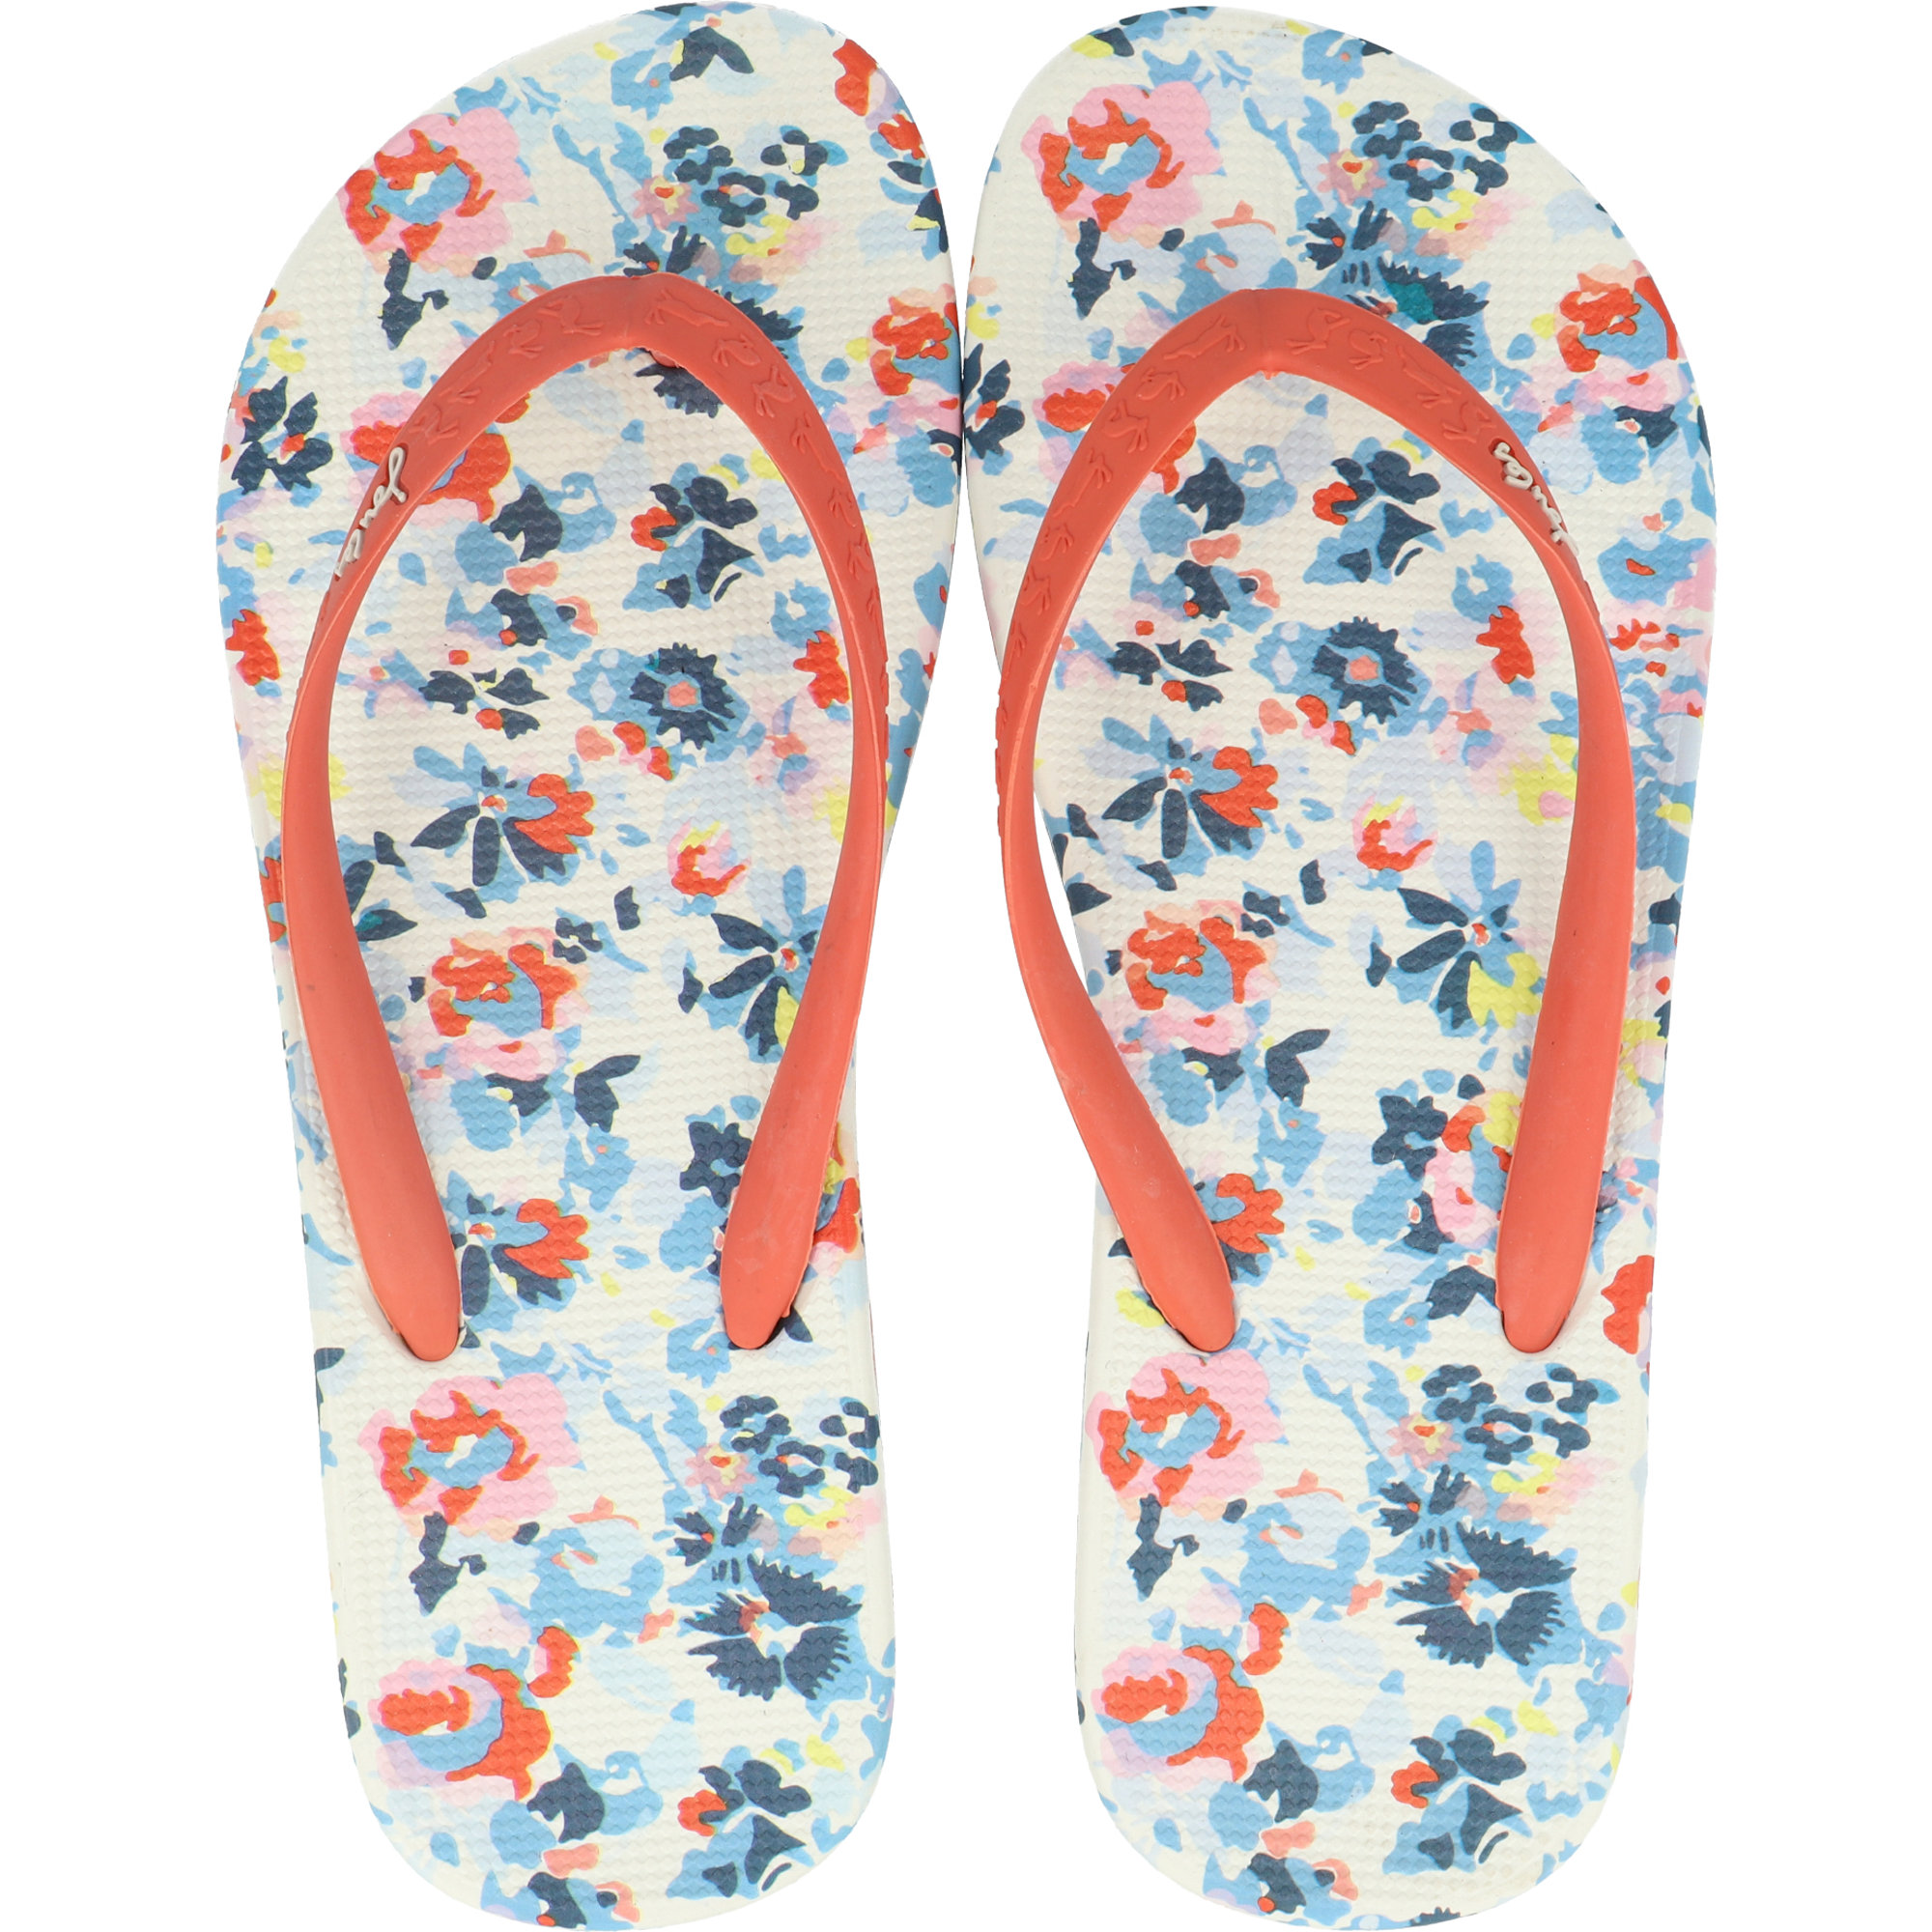 Joules Girls Printed Flip Flops in CREAM FAIRY DITSY Size Childrens 1